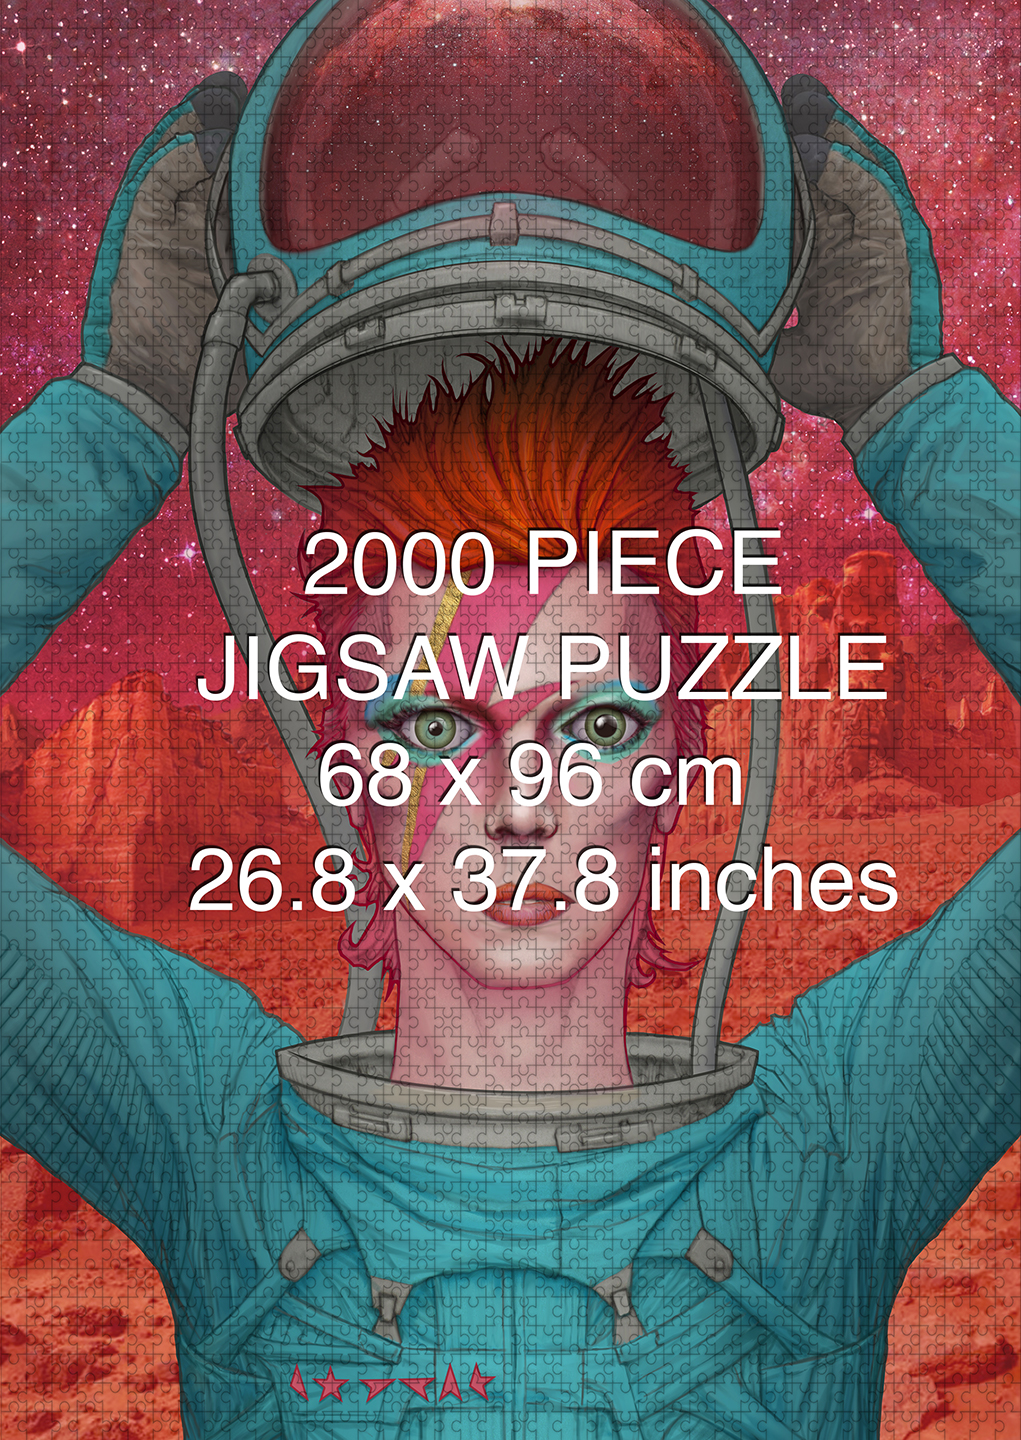 David Bowie: Ziggy Stardust on Mars 2000 piece puzzle by Aaron Wolf and Pandemic Puzzles